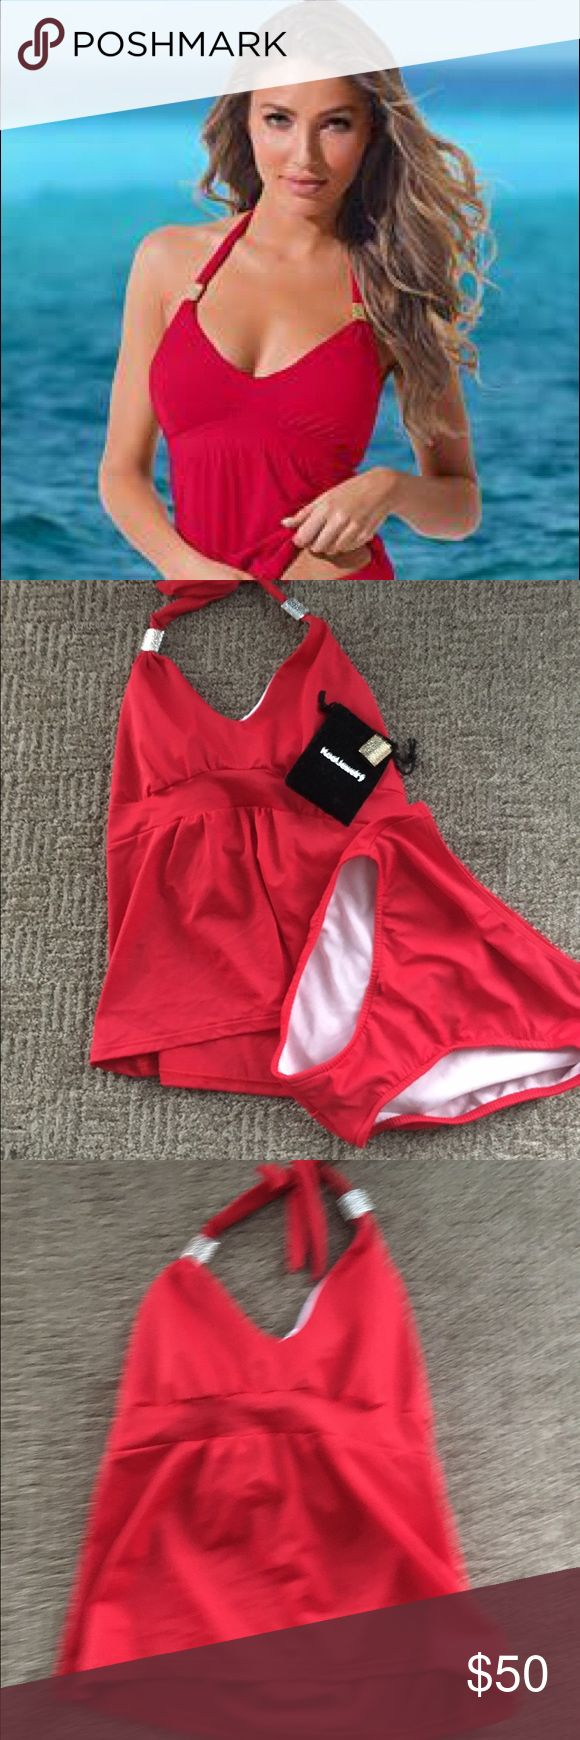 Venus red siren red Tankini set New never worn Venus Soren Tankini. Removable enhancer cups. Comes with gold and silver hammered slides to change the look.  Size 8 top and bottoms. VENUS Swim Bikinis